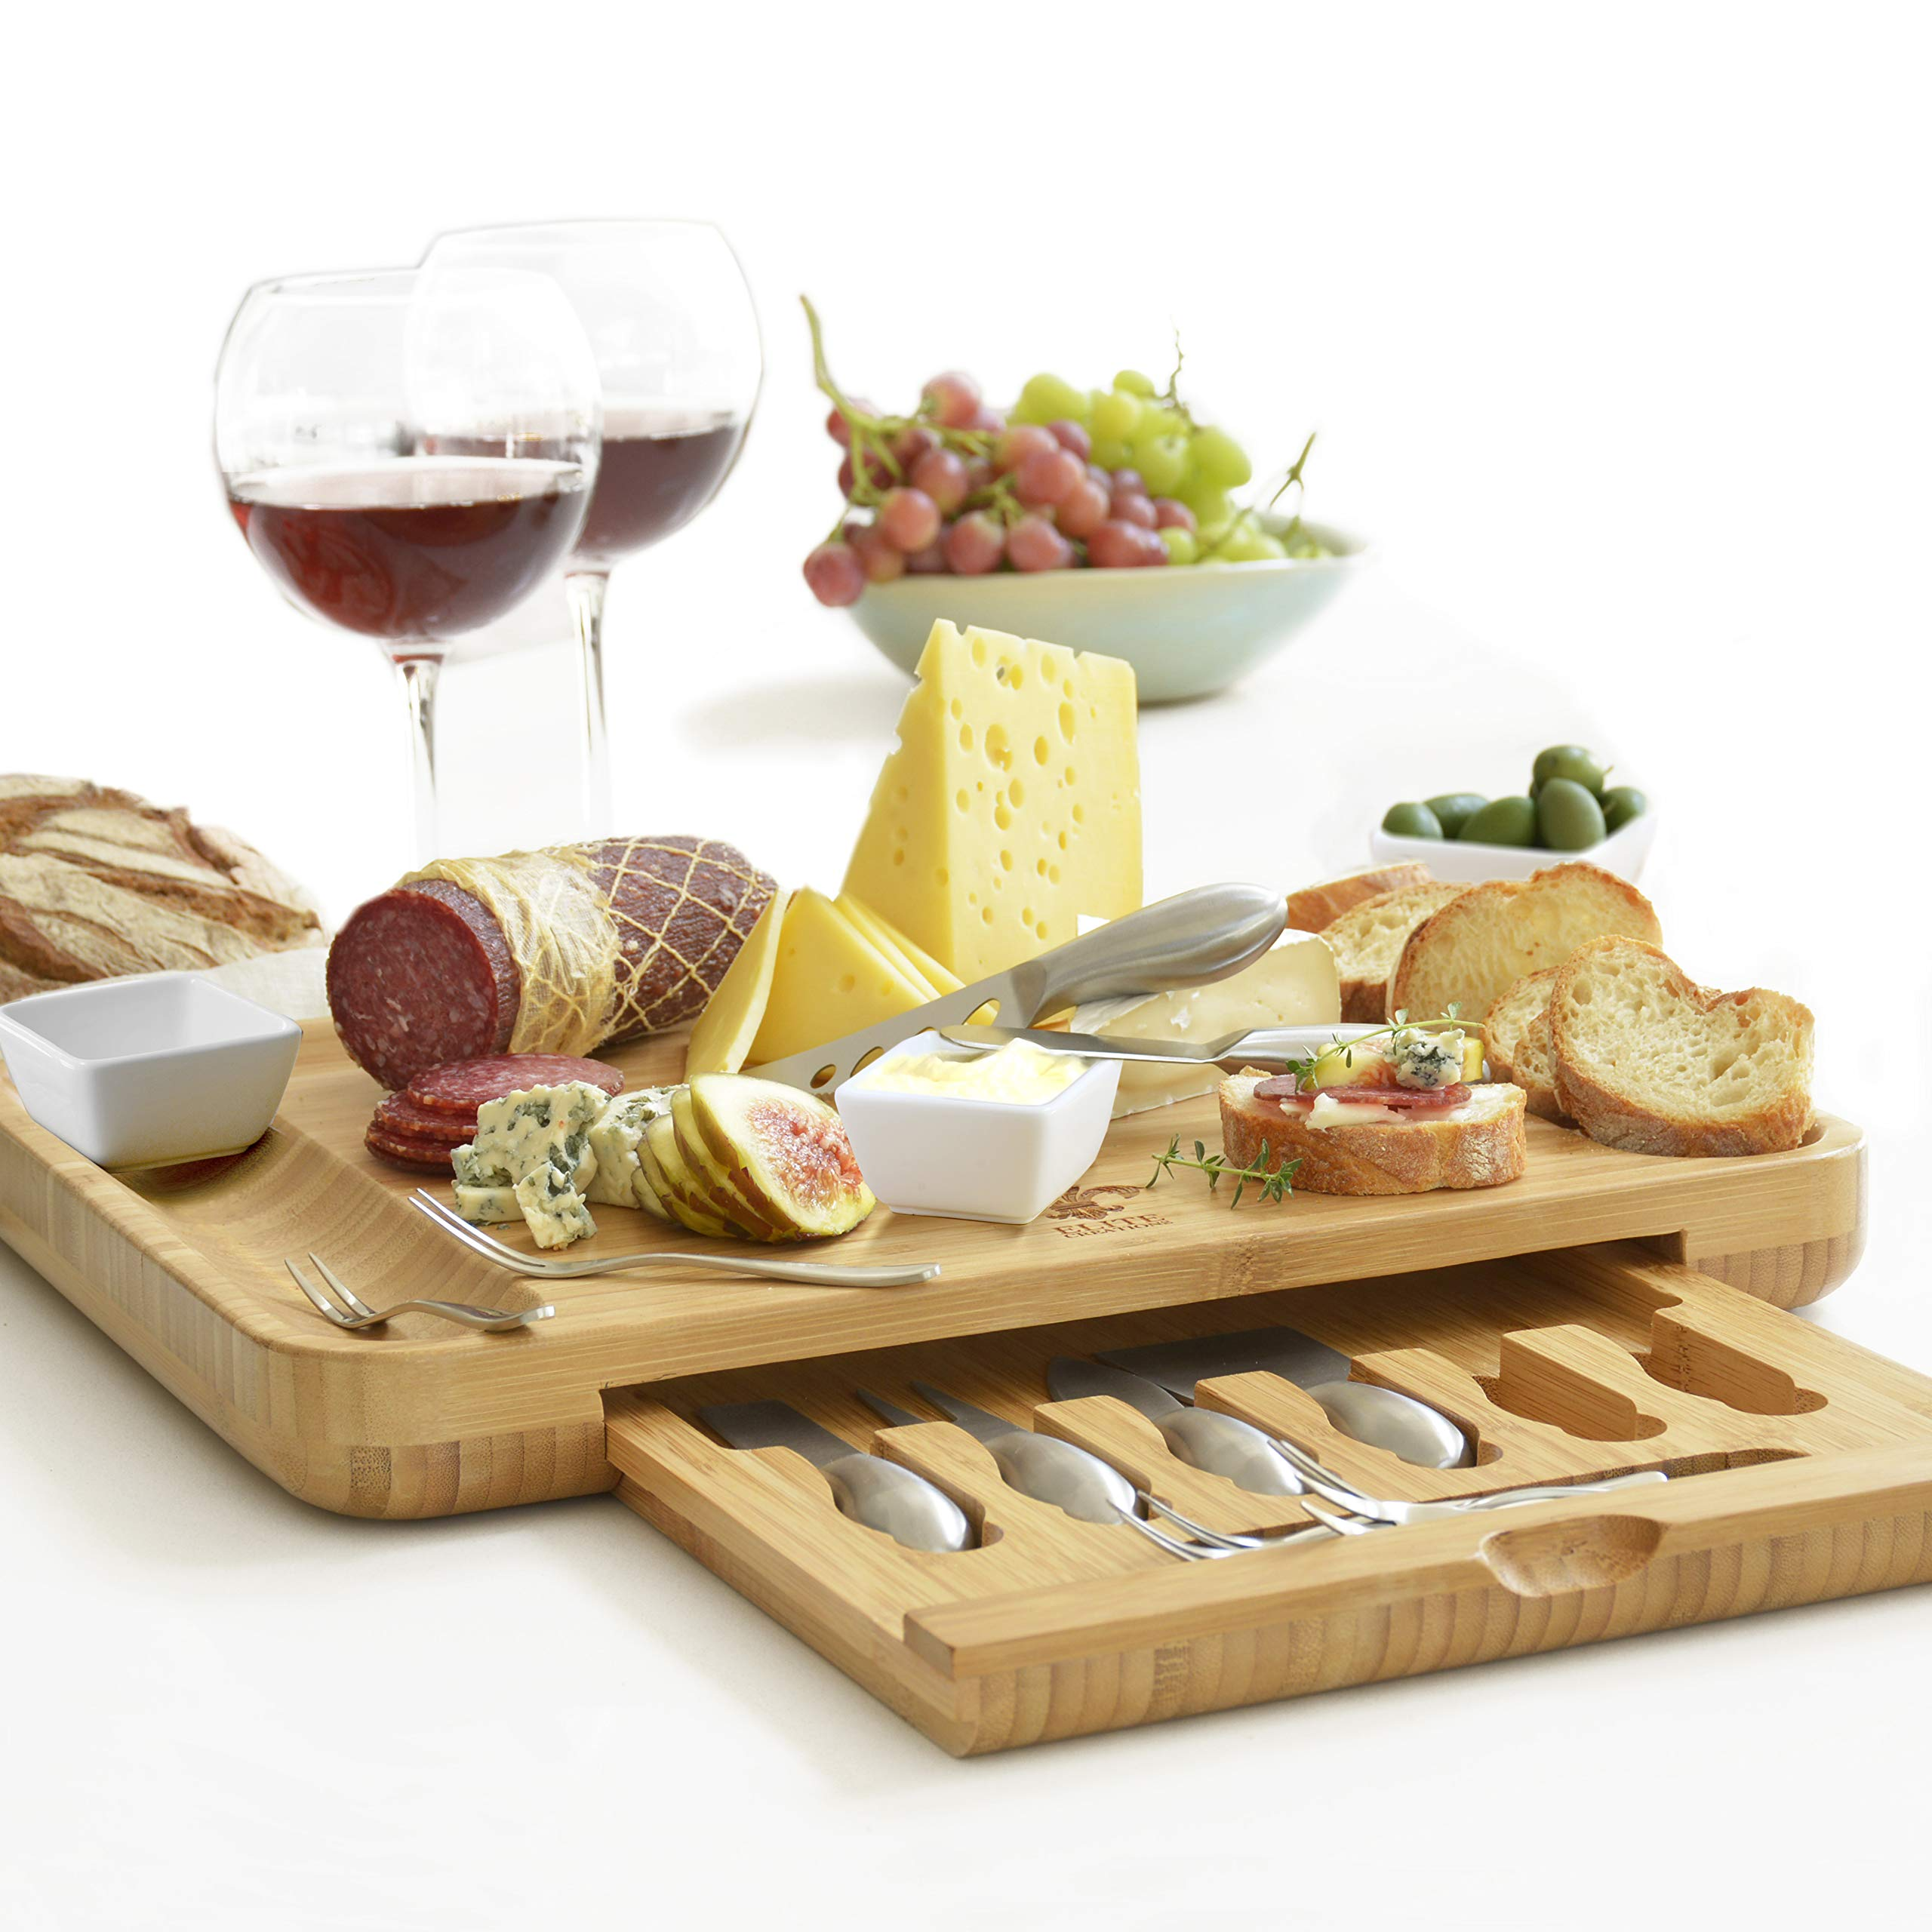 Premium Cheese Board & Utensils Gift Set - Extensive Serving Set -X- Large Bamboo Board & 6 Stainless Steel Cheese Knives & 6 Appetizer Forks & 3 Ceramic (silver, with cermic dishes)